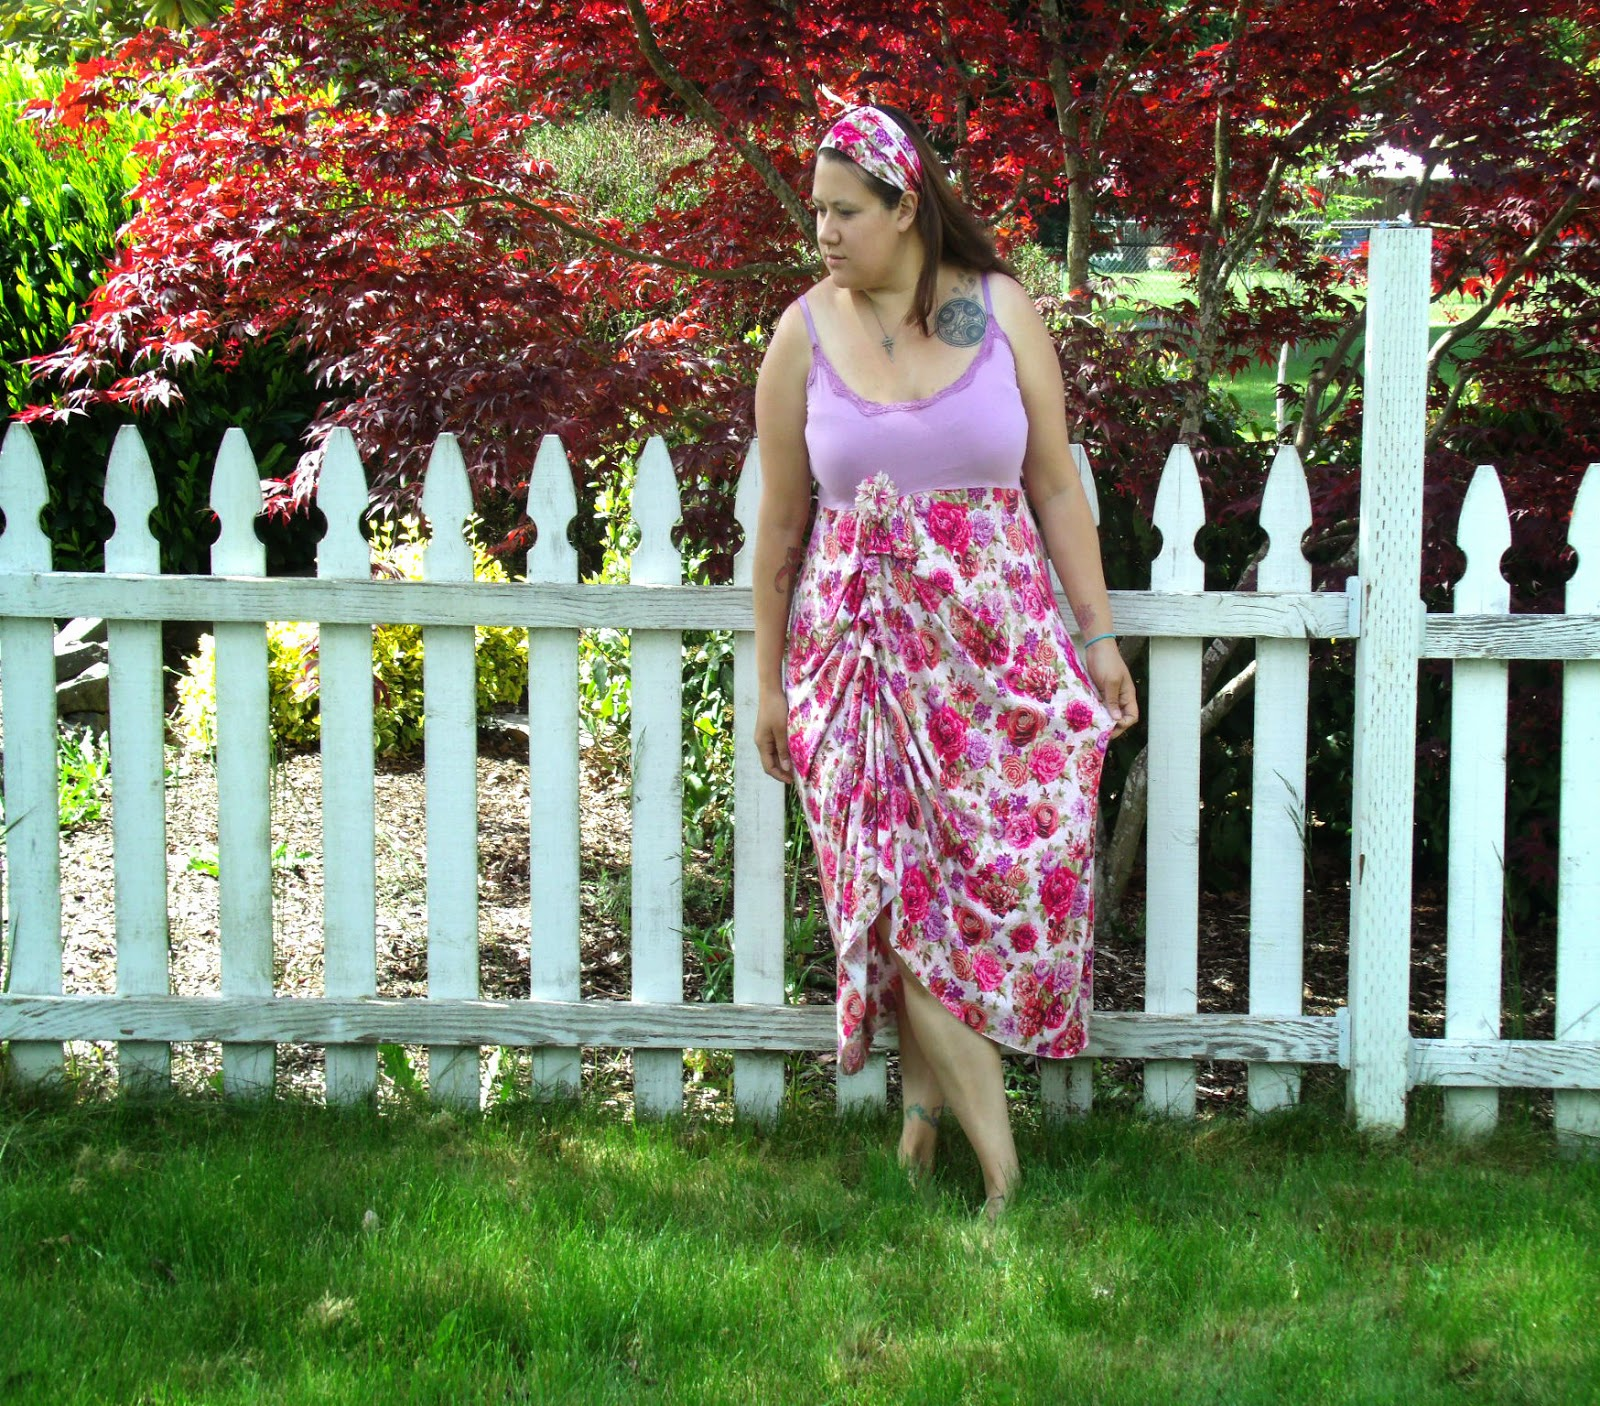 Summer Dress by Keep Calm and Carrion